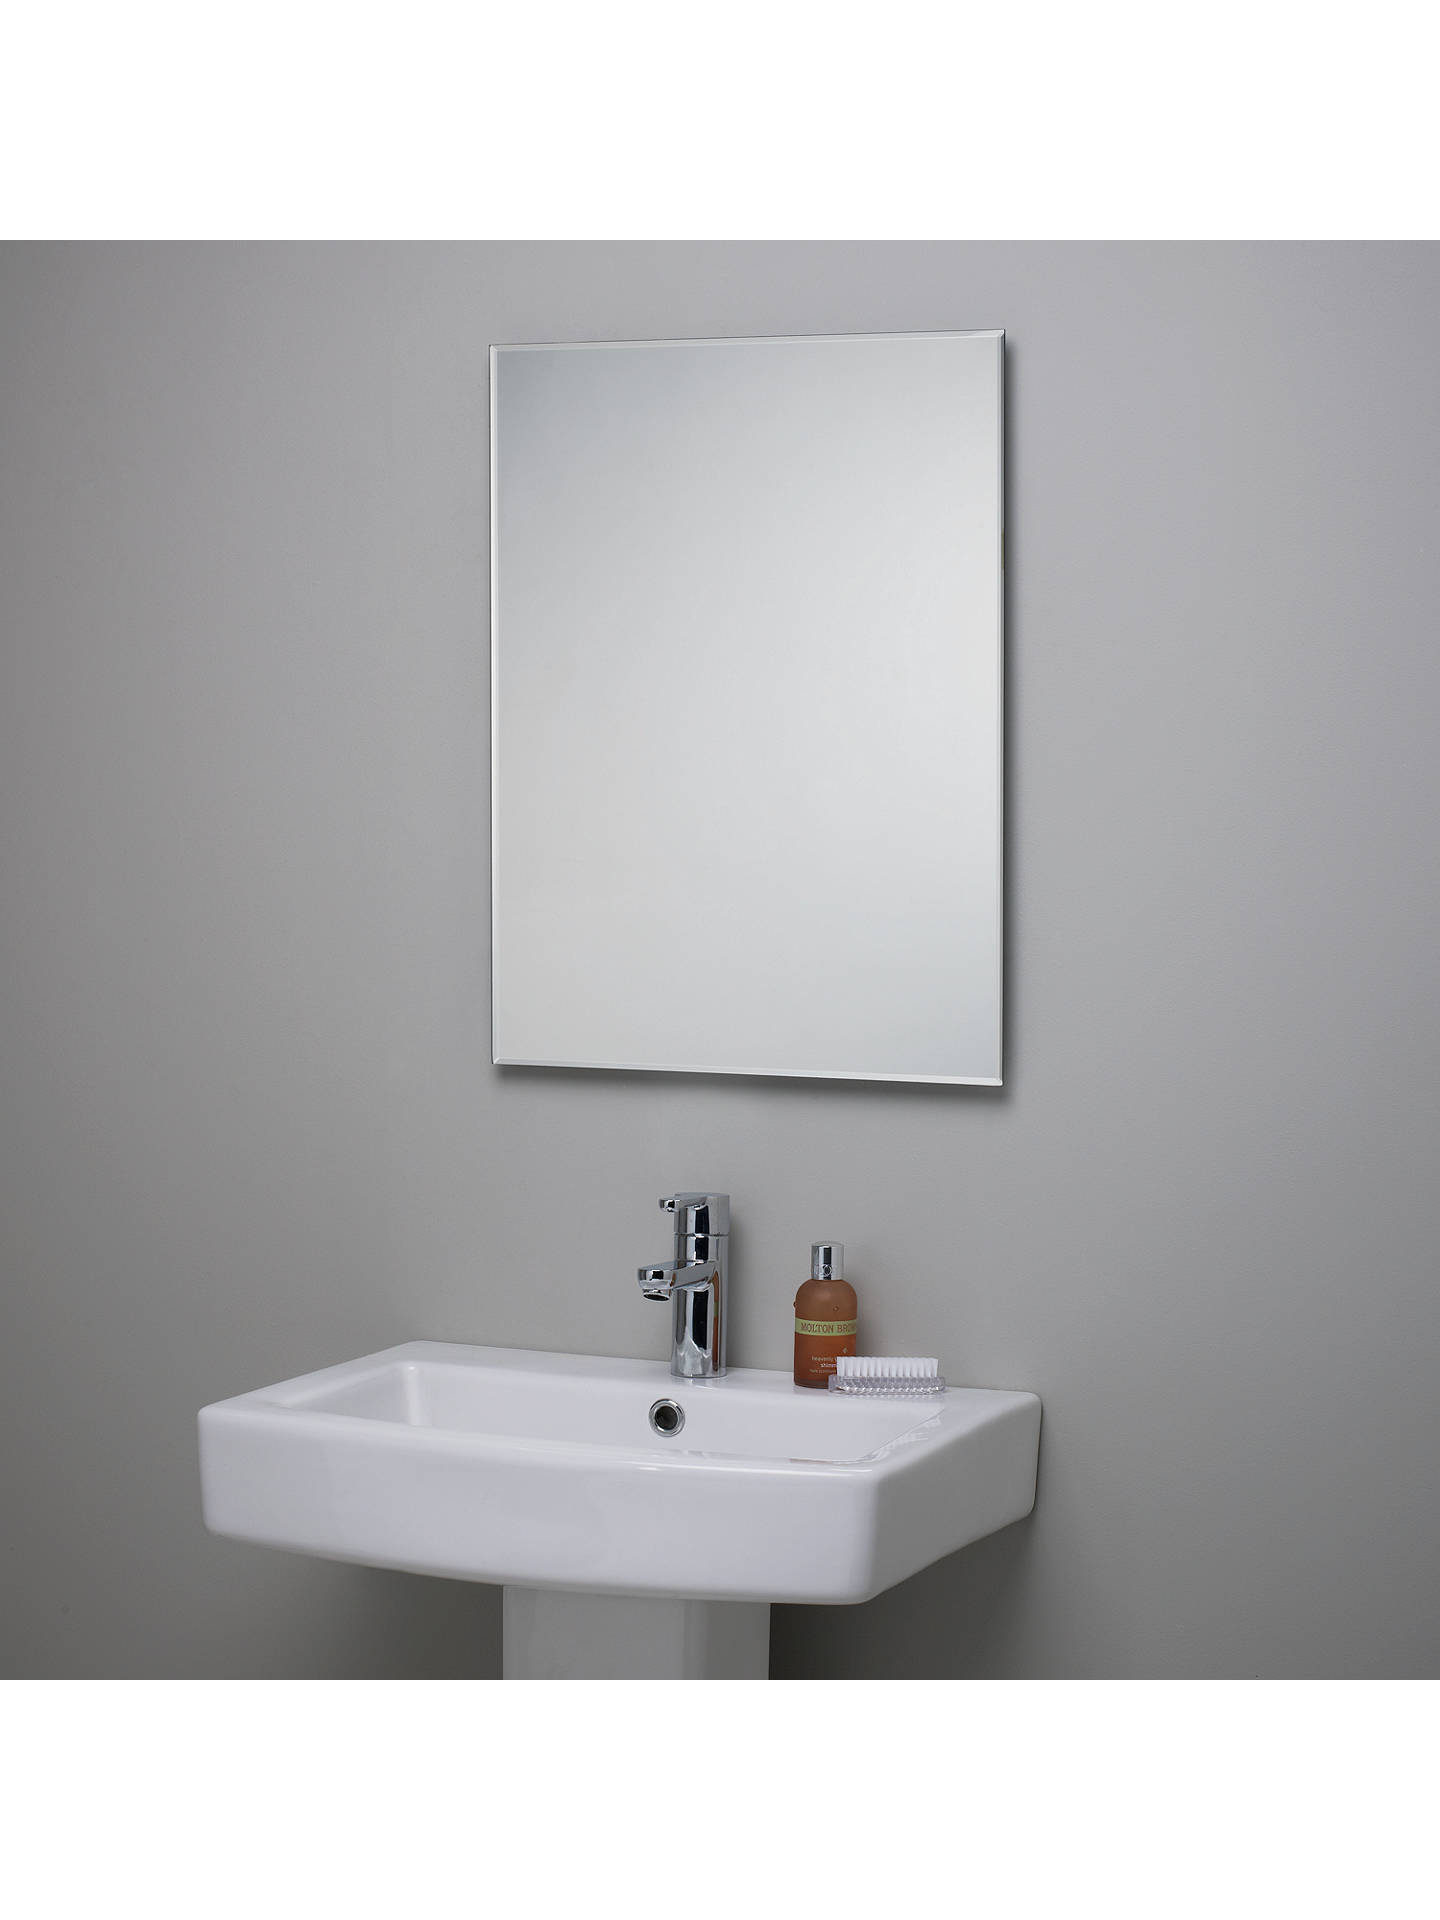 BuyJohn Lewis & Partners Bevelled Edge Mirror H45 x W60cm Online at johnlewis.com